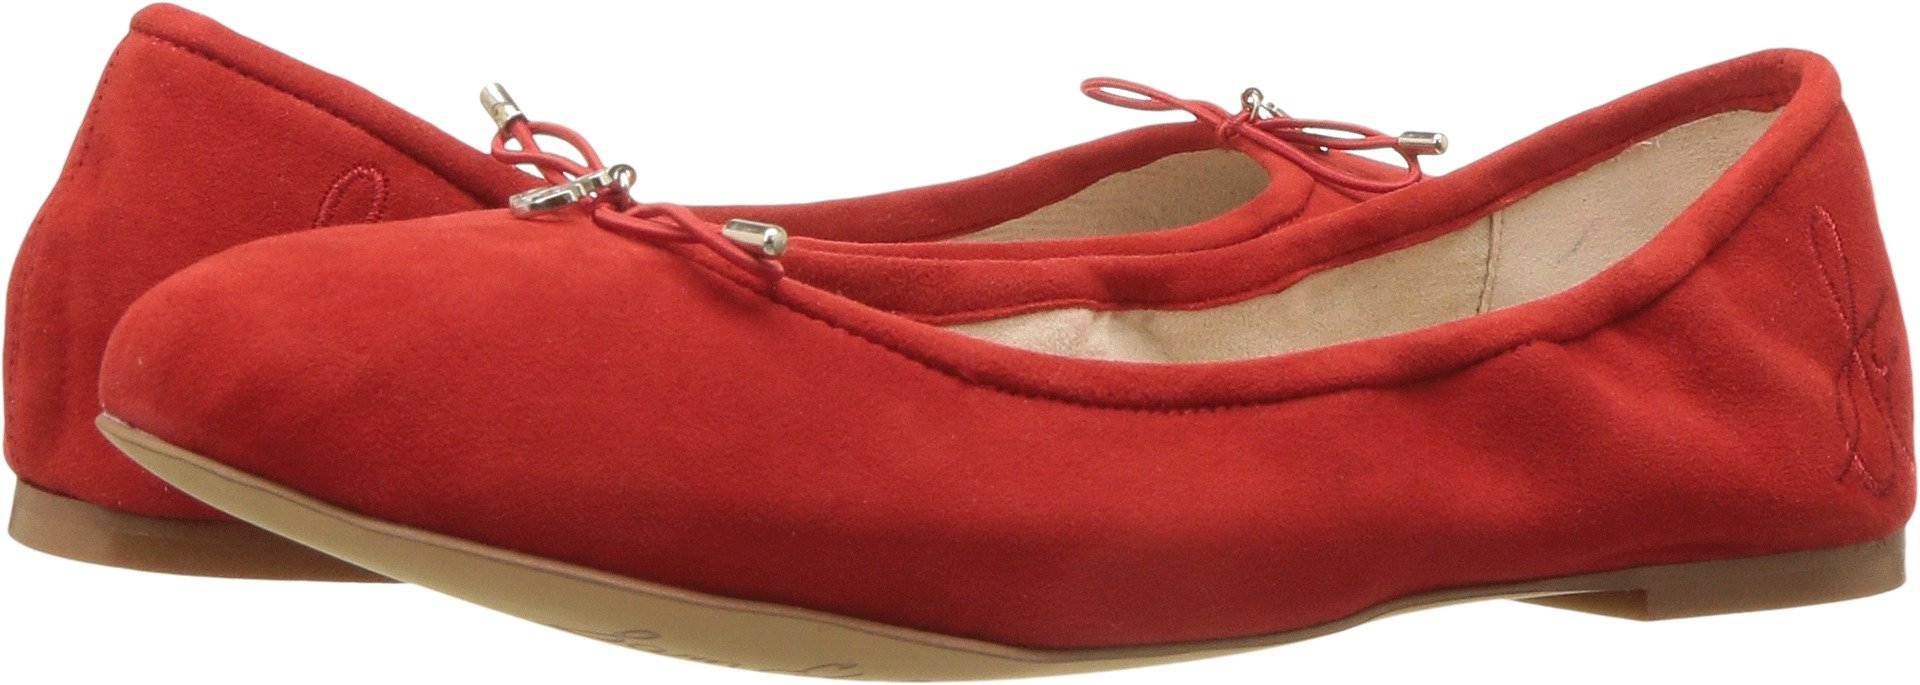 Sam Edelman Women's Felicia Candy Red Kid Suede Leather 12 M US by Sam Edelman